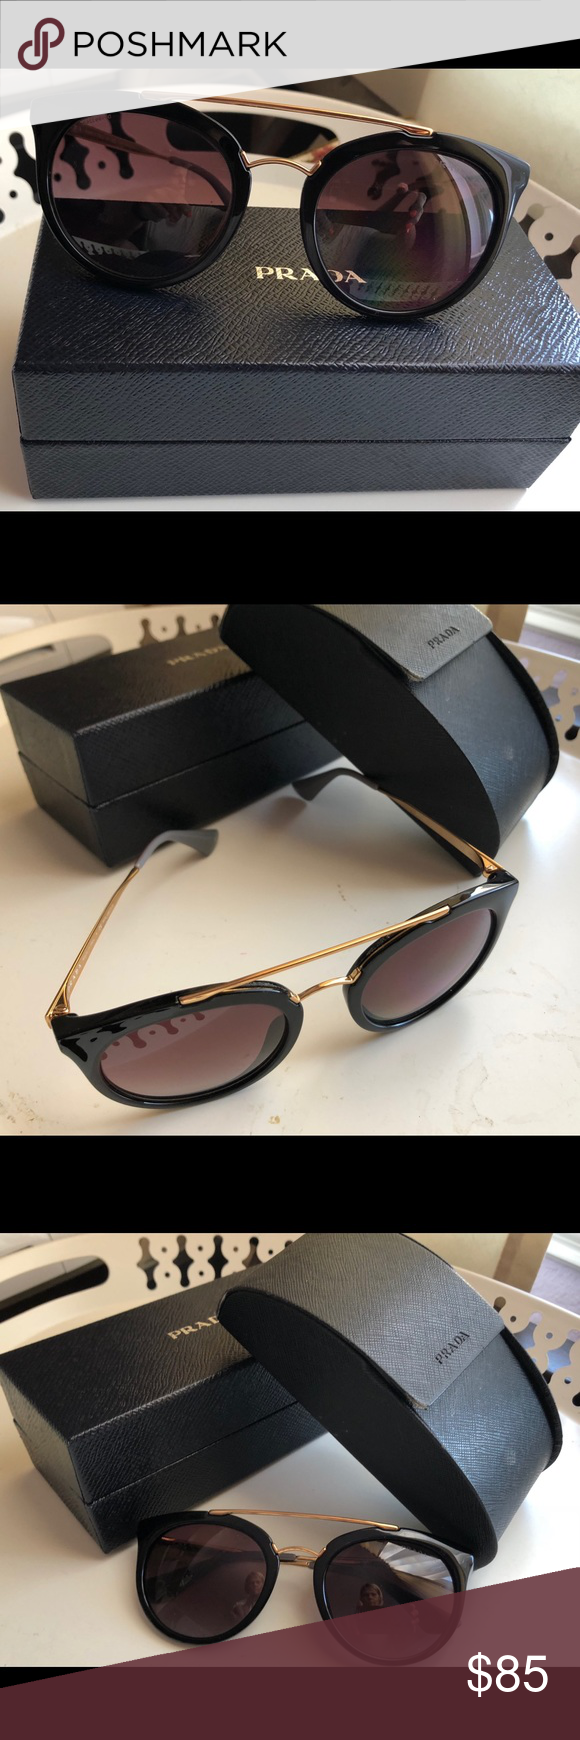 3c6f13eed9a8 Prada Sunglasses polarized spr23s Prada Cinema Cat Eye sunglasses. Tenderly  preowned. My case reflects the most wear but I did save the original box it  came ...